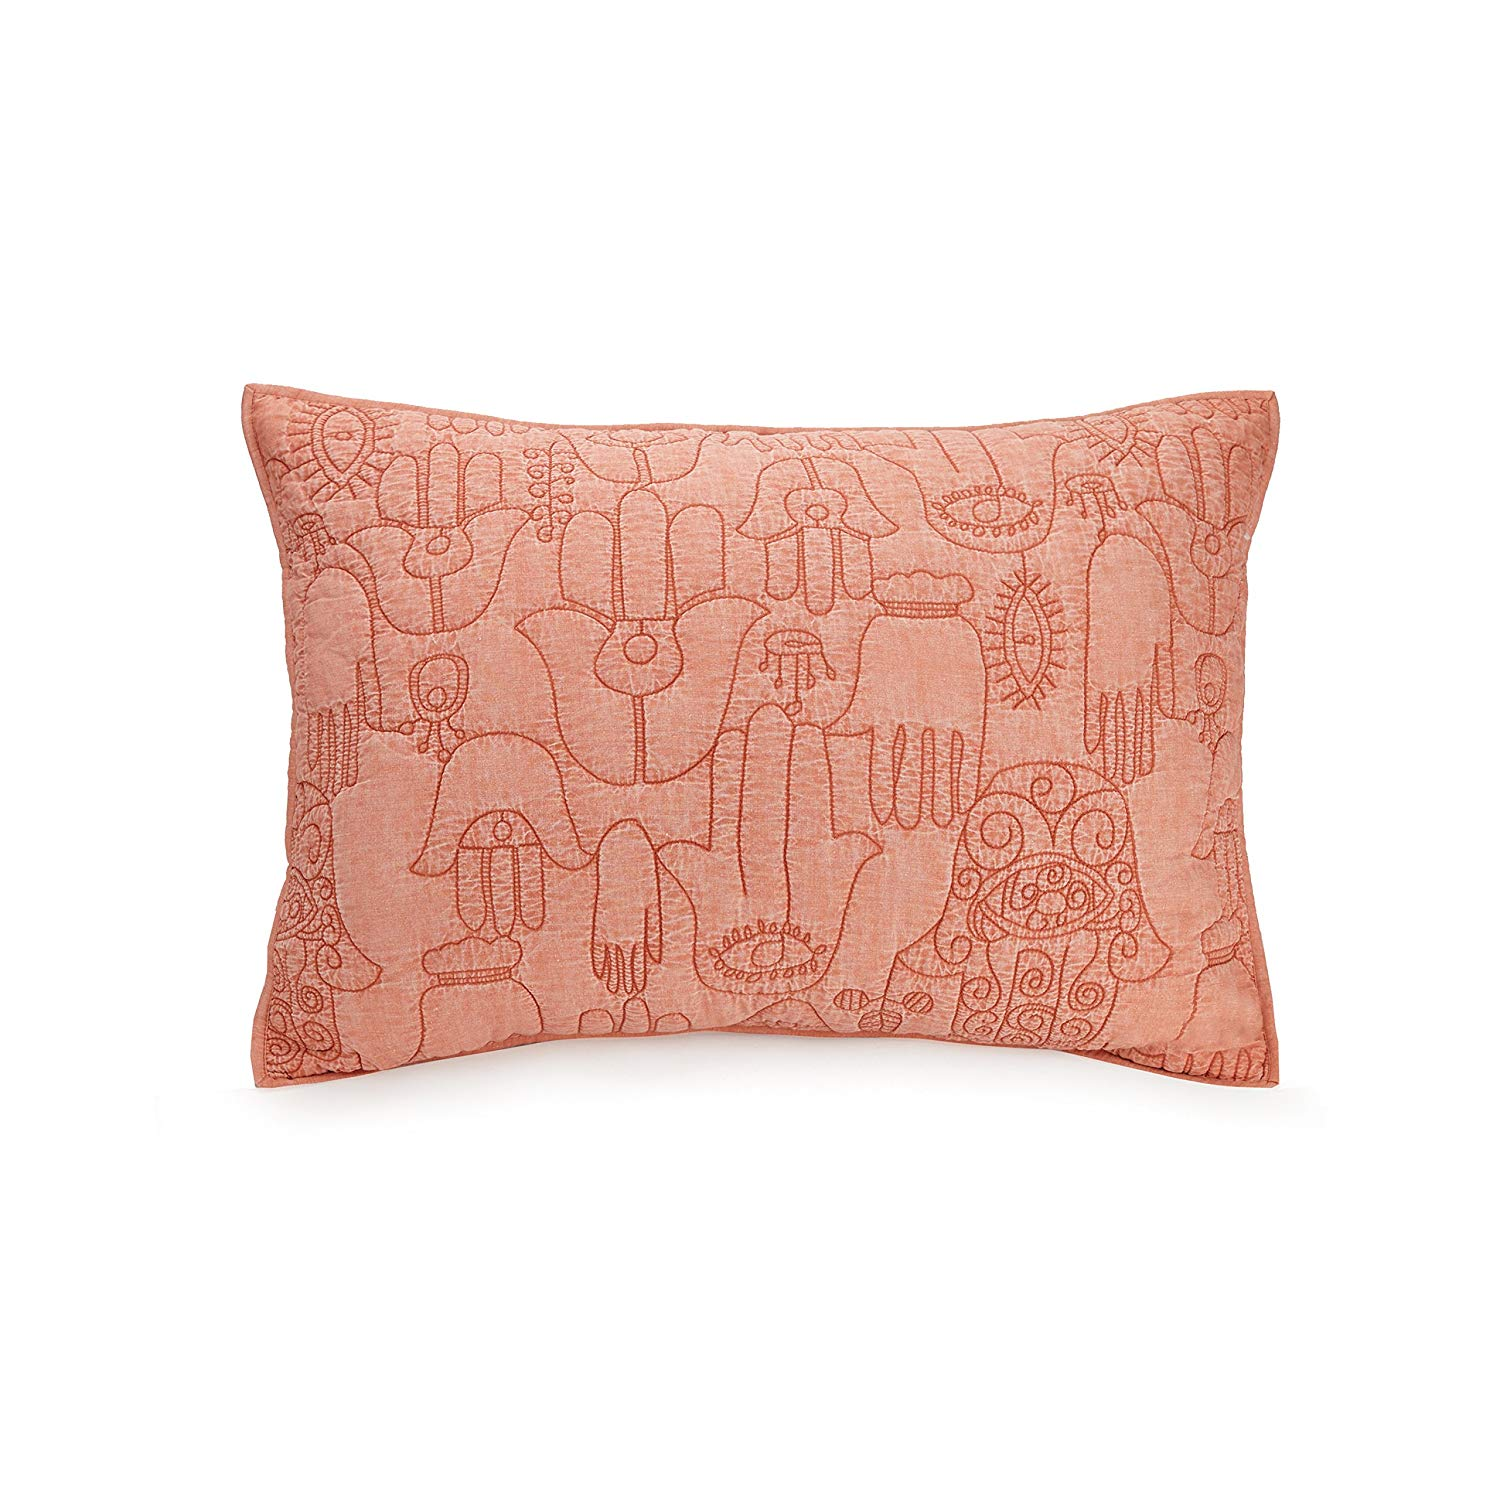 Justina Blakeney Hamsa pillow. Courtesy of Amazon.